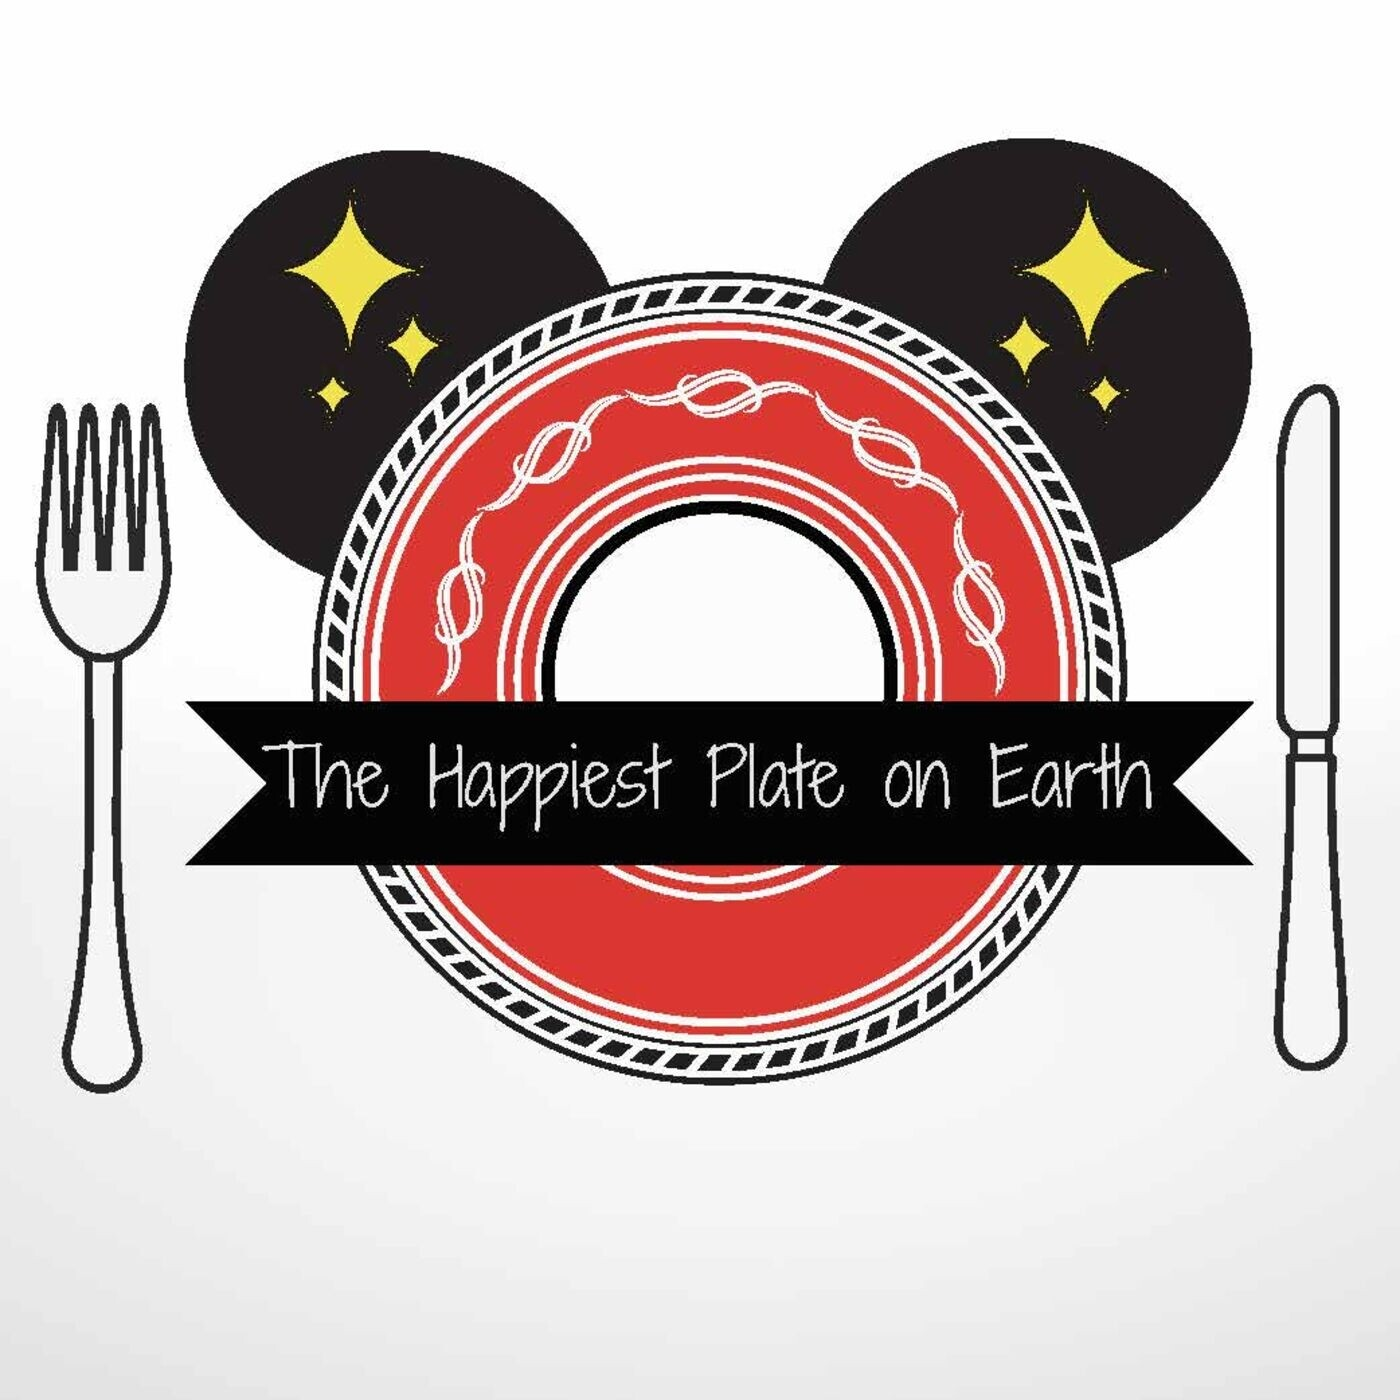 Episode 50 - WDW: The Magic Returns~Dining Options Explored